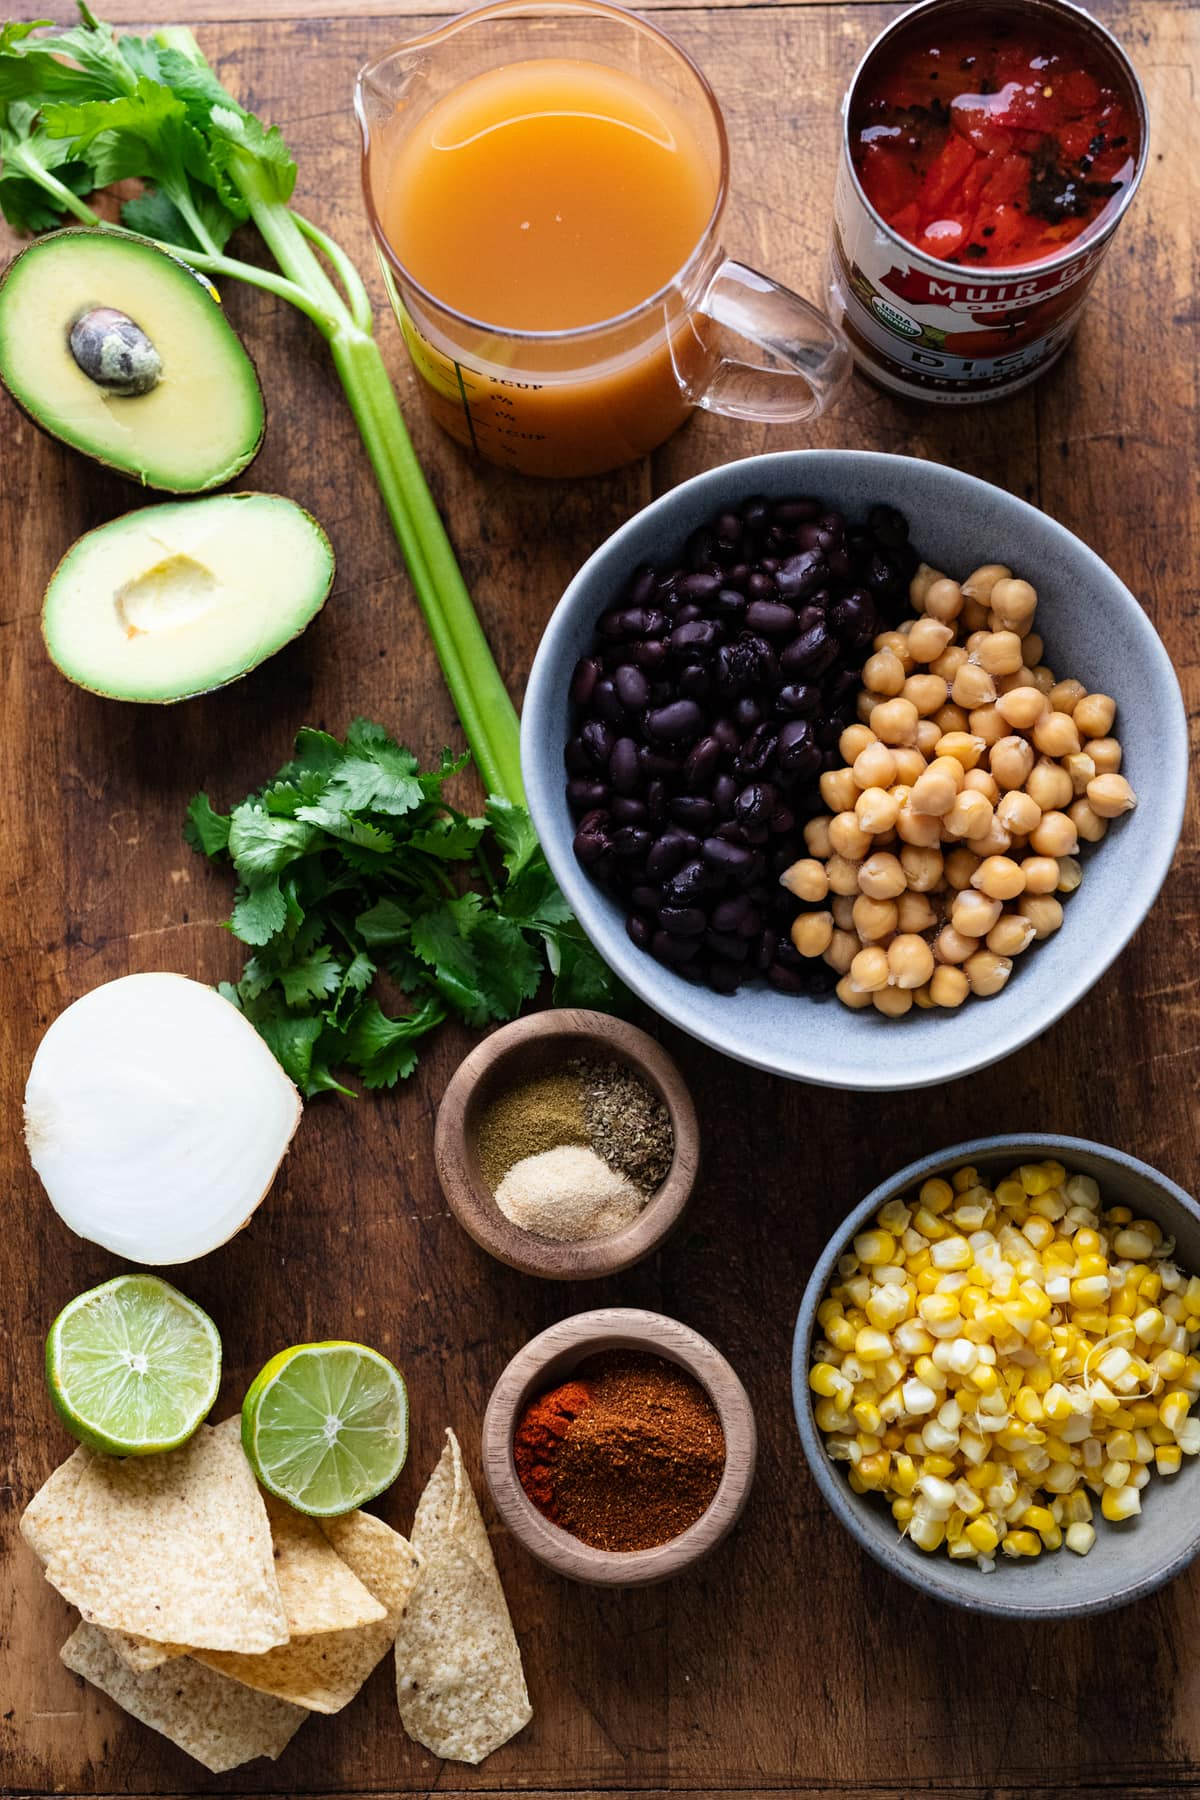 Ingredients for vegetarian tortilla soup arranged on a wooden background.